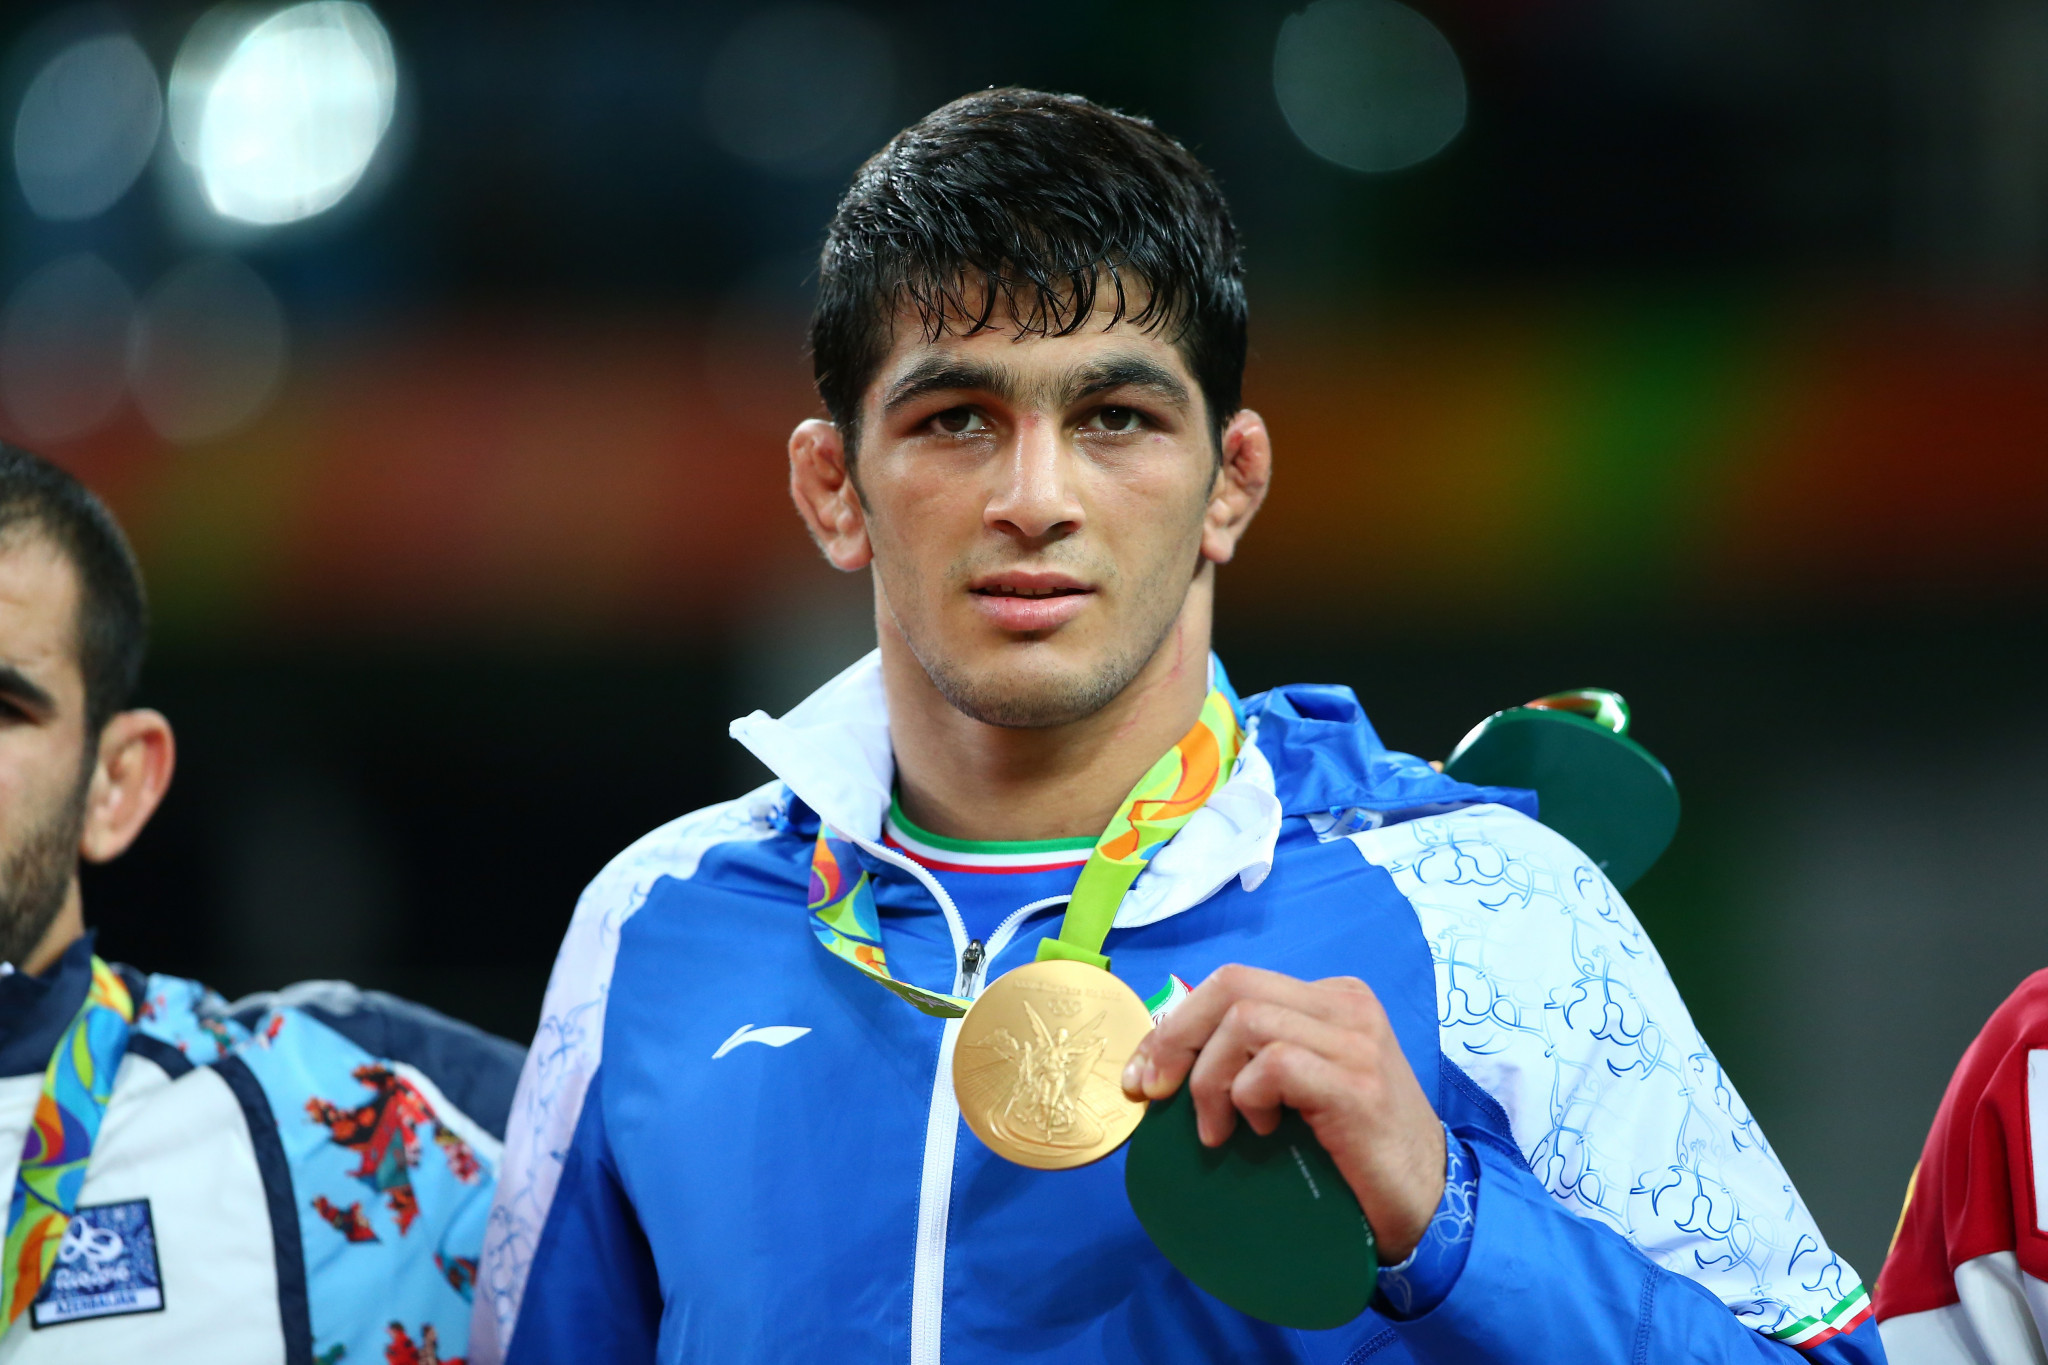 Olympic wrestling champion Yazdani aiming to compete at Paris 2024